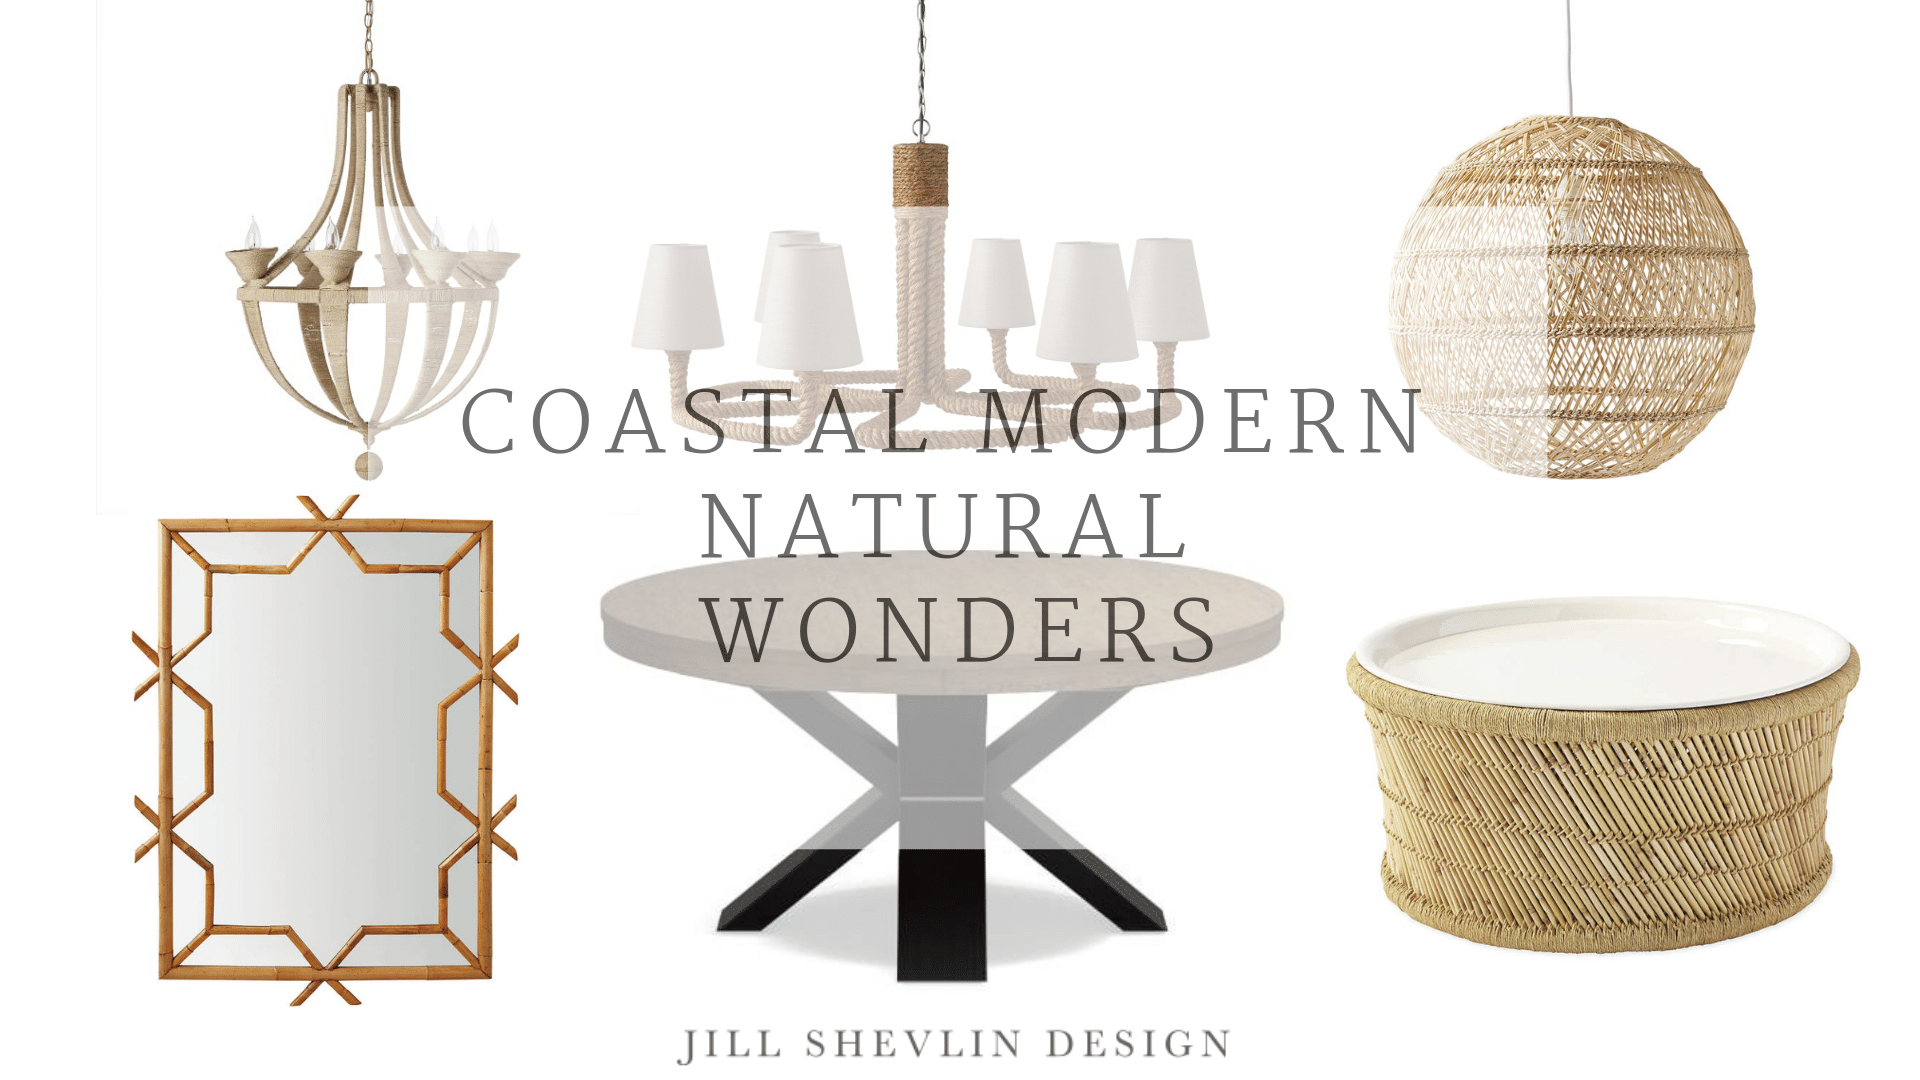 Coastal Modern Natural Wonders Jill Shevlin Design